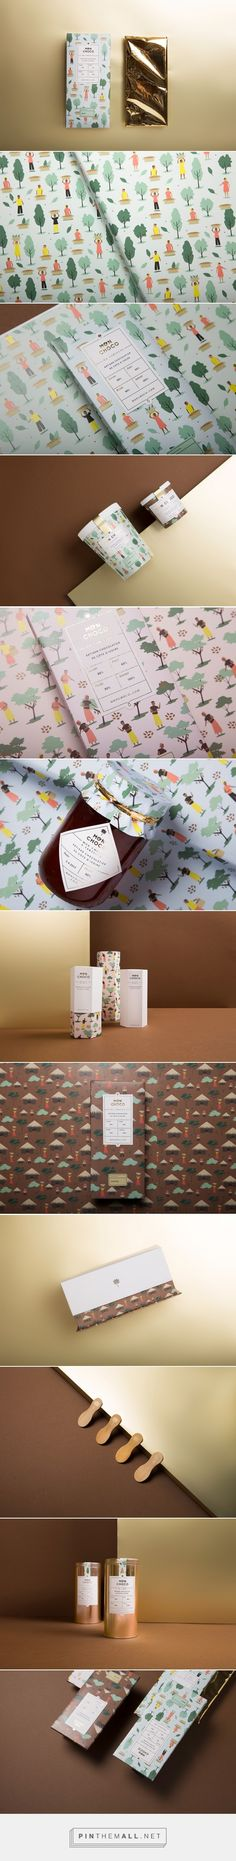 Piehole whiskey on behance by aa reps curated by packaging - Candy candy diva futura ...